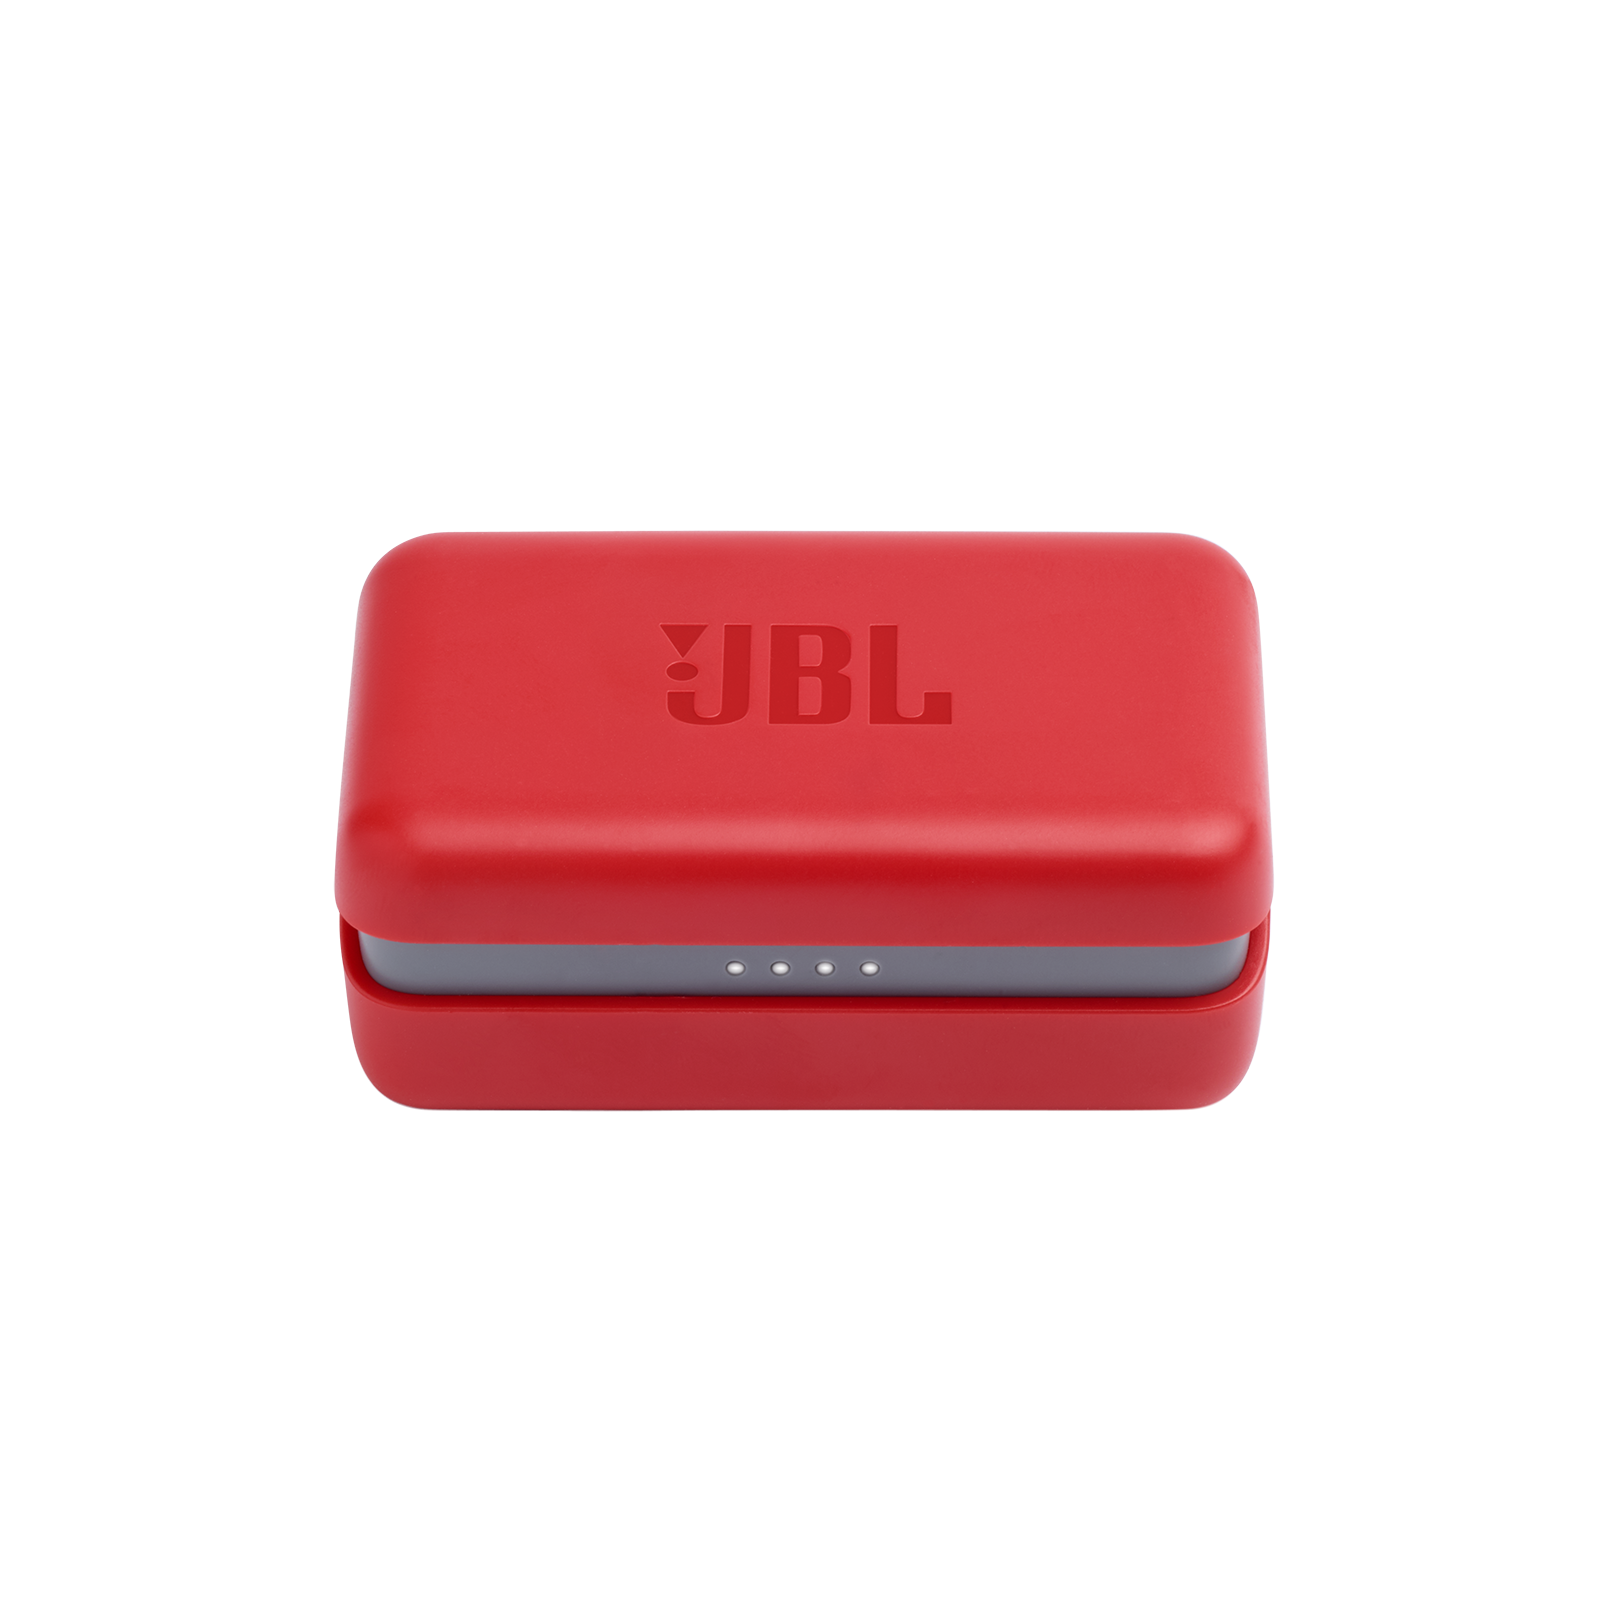 JBL Endurance PEAK - Red - Waterproof True Wireless In-Ear Sport Headphones - Detailshot 5